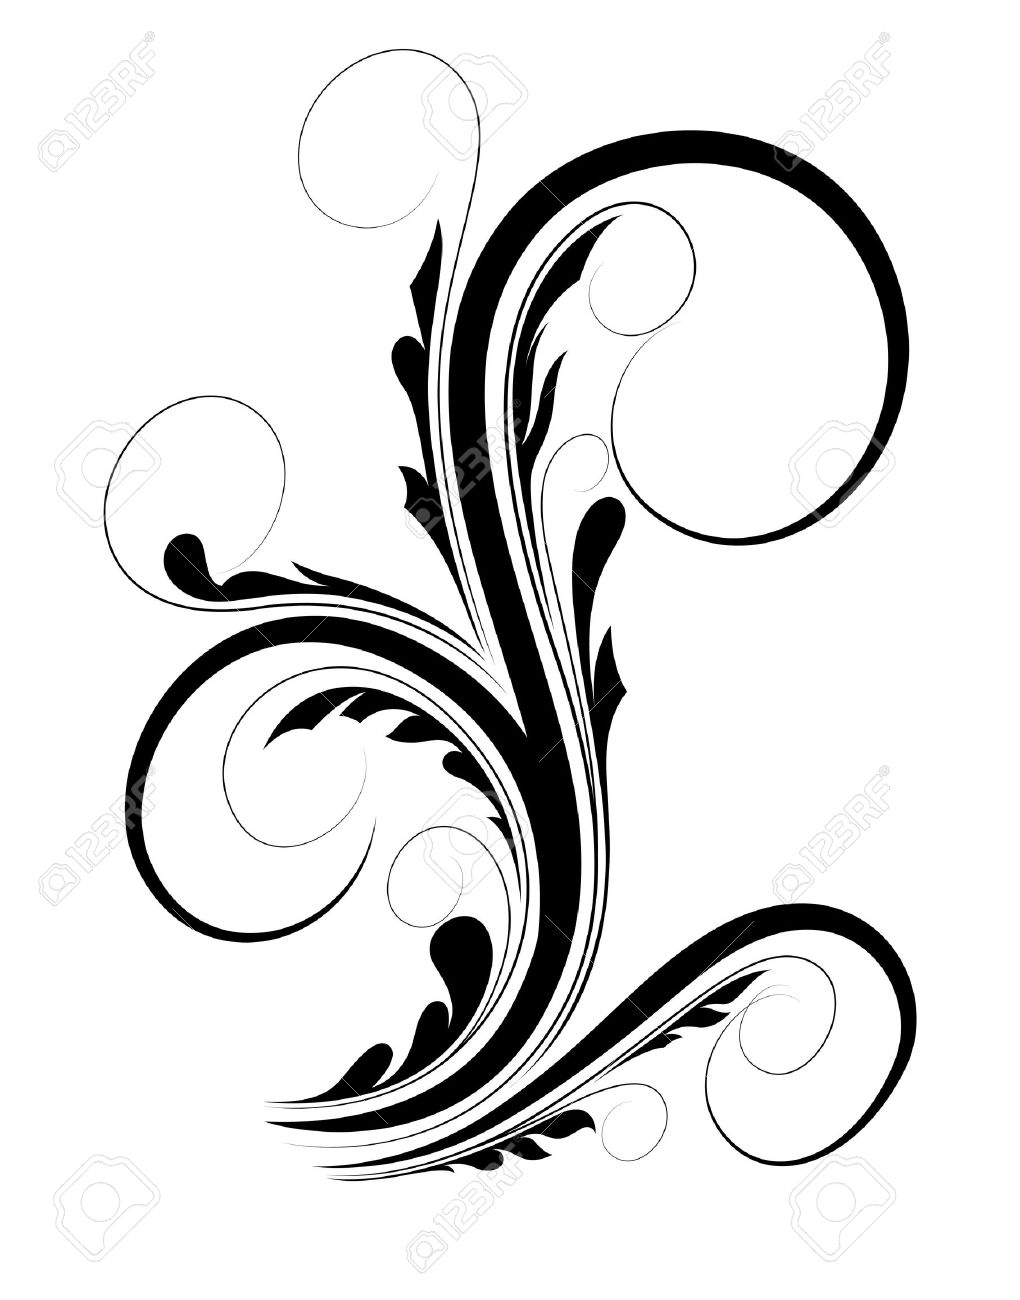 swirl floral shape royalty free cliparts vectors and stock rh 123rf com free vector swirls and snowflakes free vector swirl download